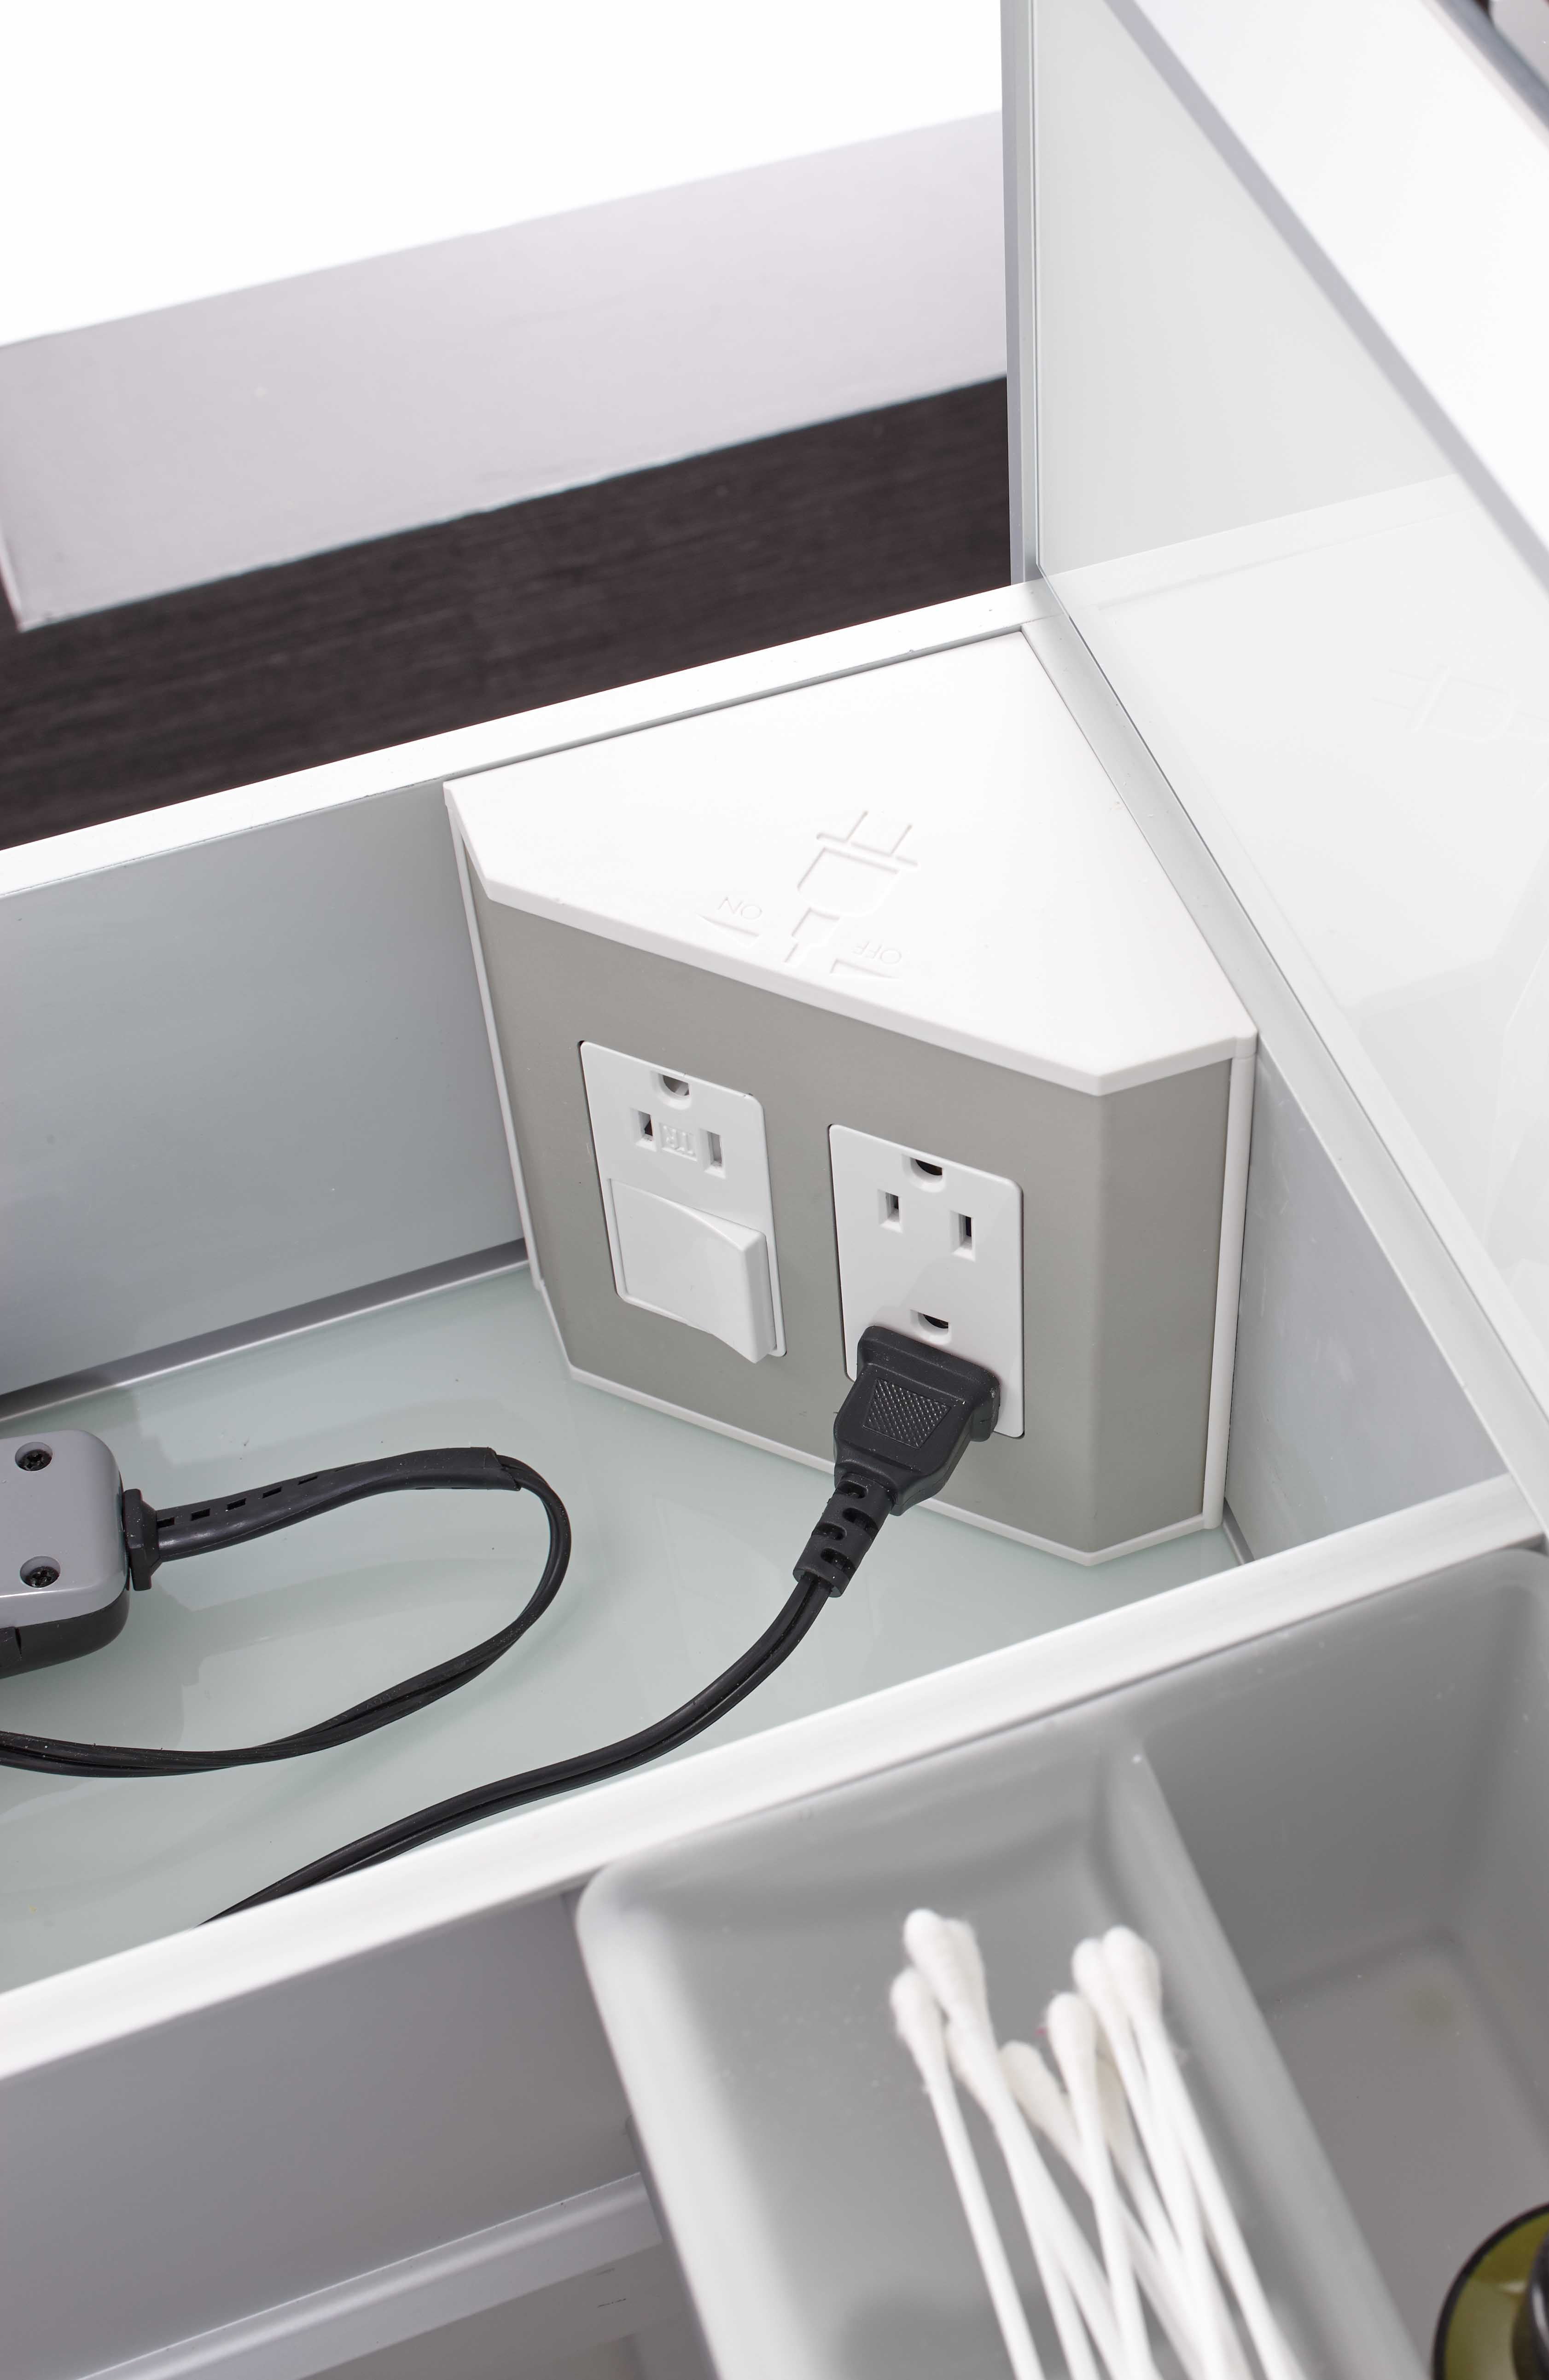 Bathroom Electrical Outlet In The Drawer Electrical Outlets For Bathroom Drawers Vanities